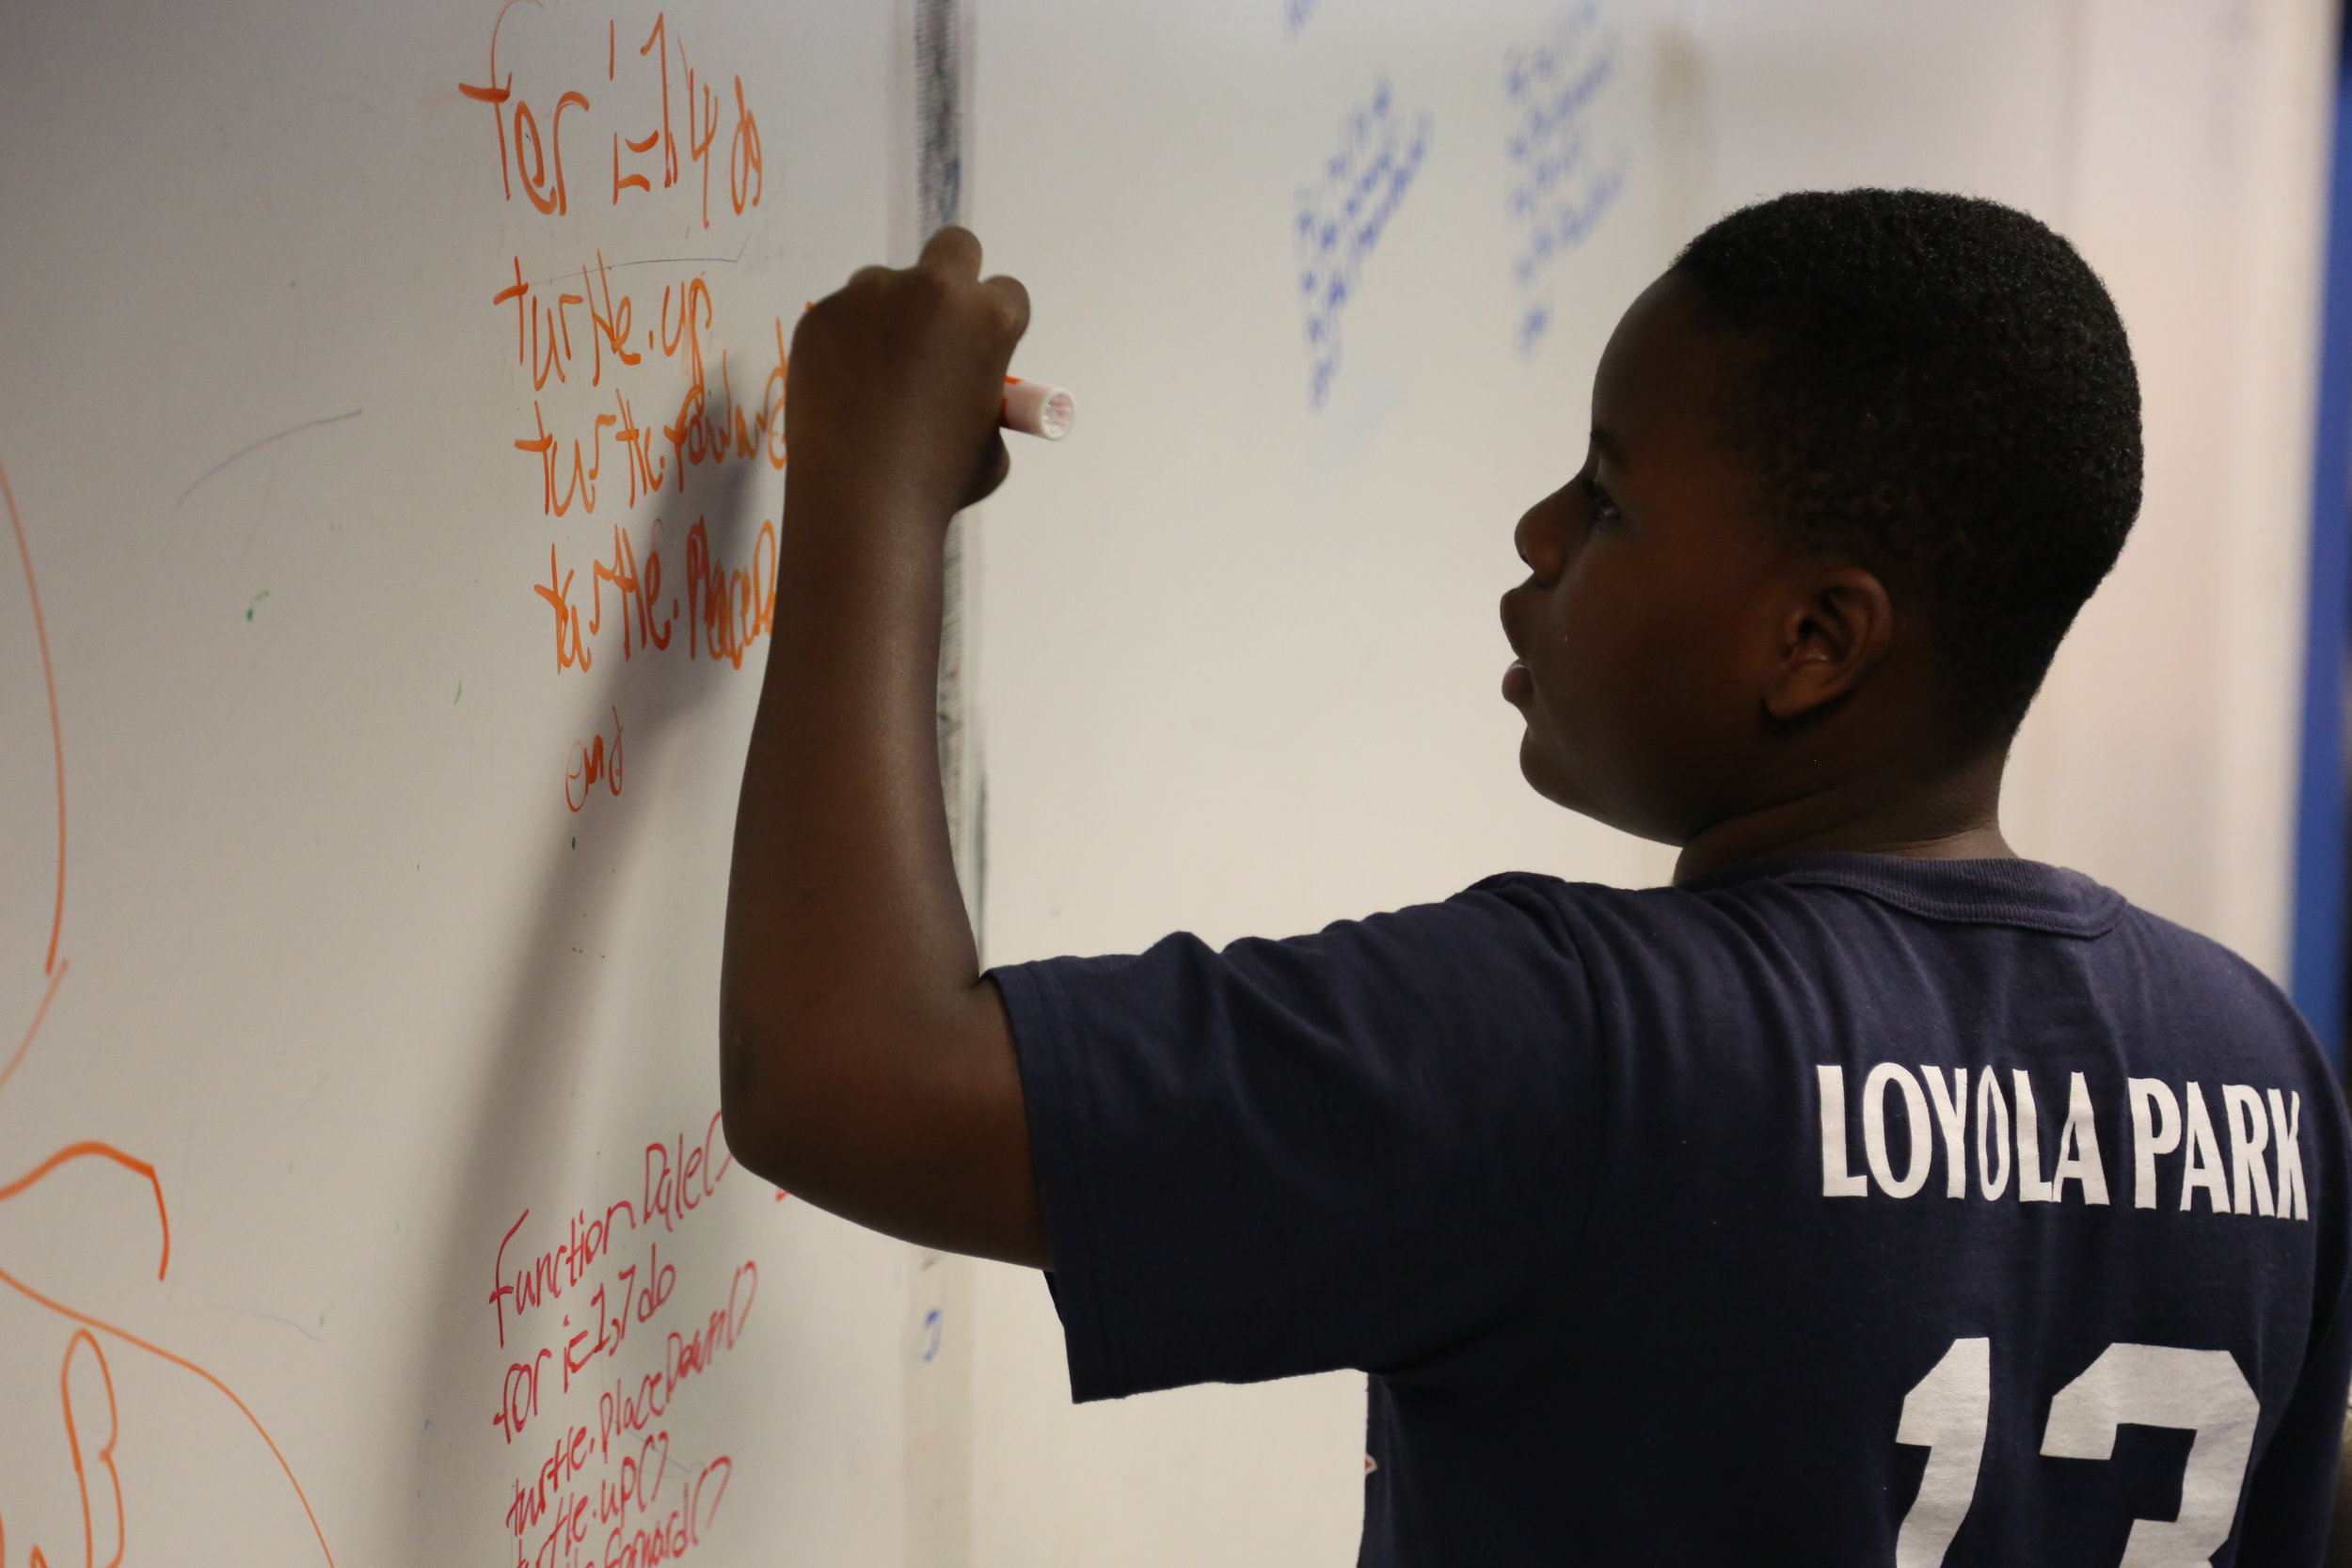 Teens in Chicago's Early College STEM Schools not only get mentoring on what a tech career is like, but also hands-on education.